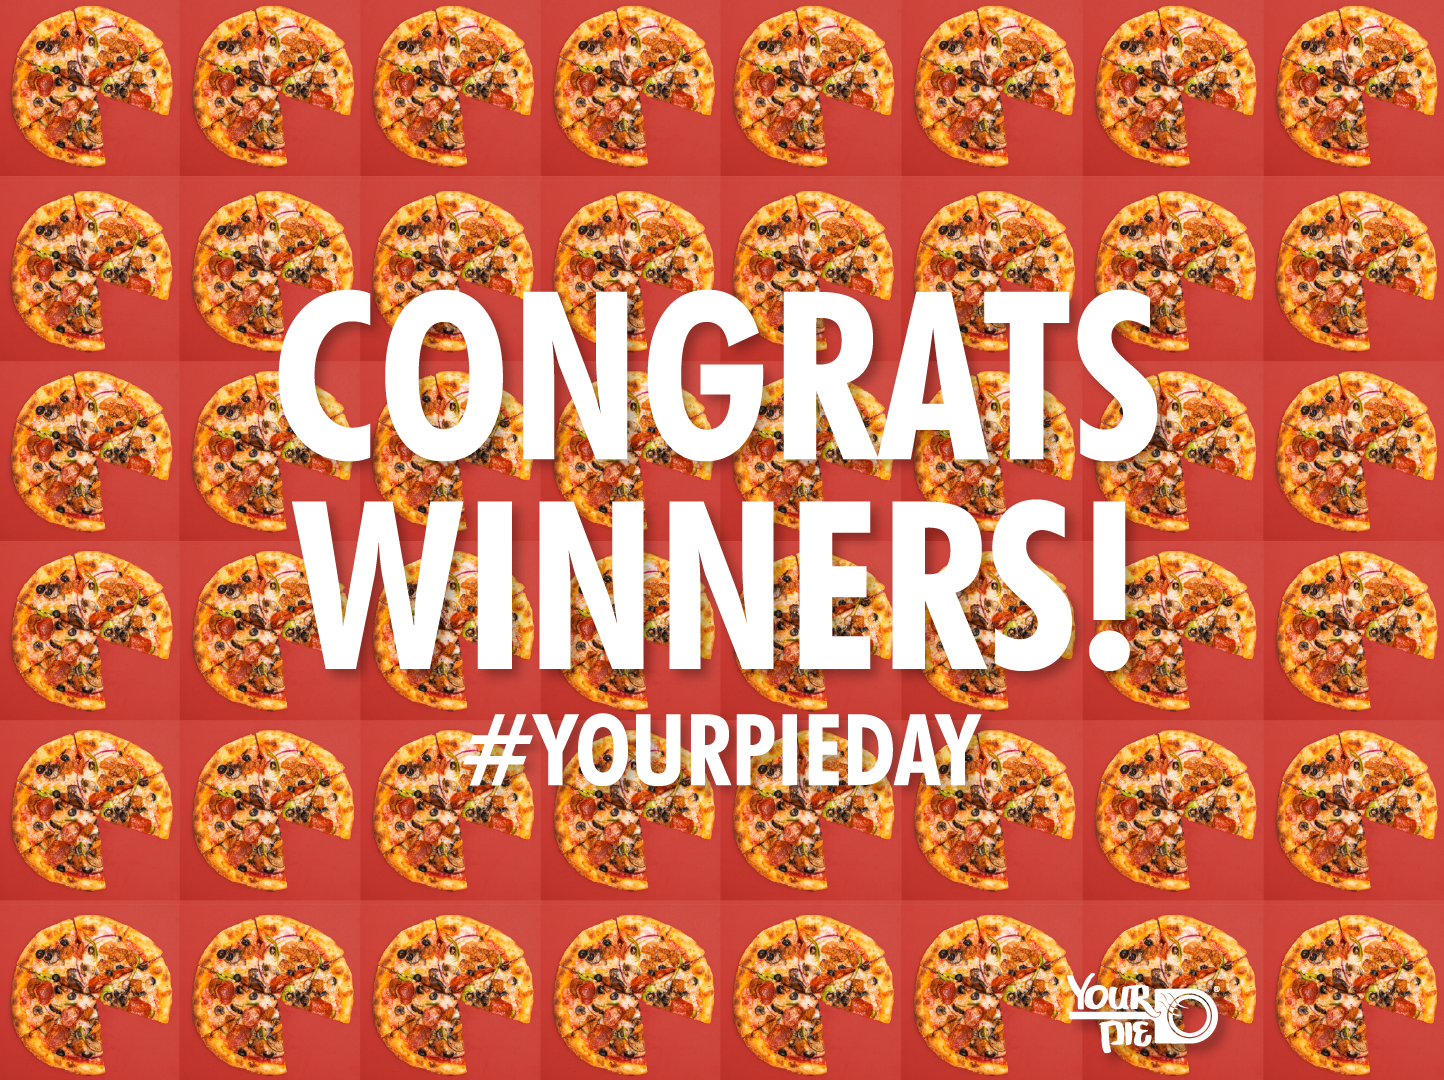 Congrats to the 56 winners of our #YourPieDay 2018 giveaway!